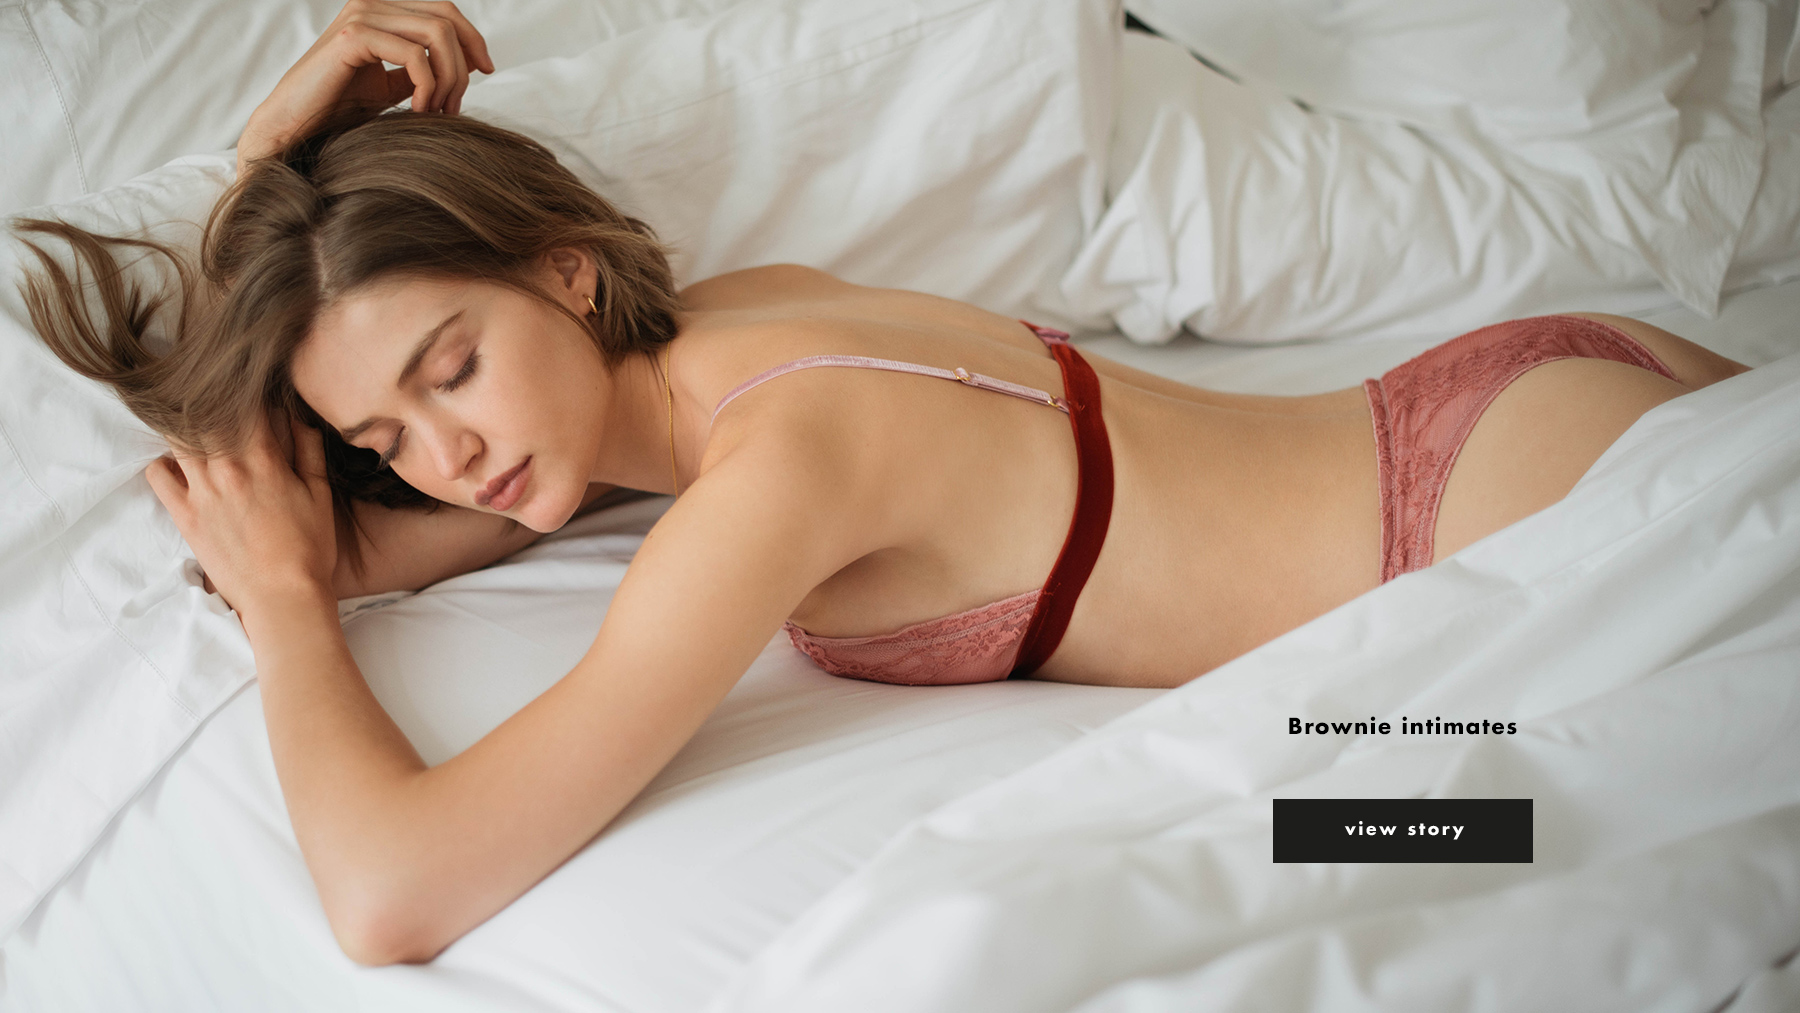 Campaign Brownie intimates